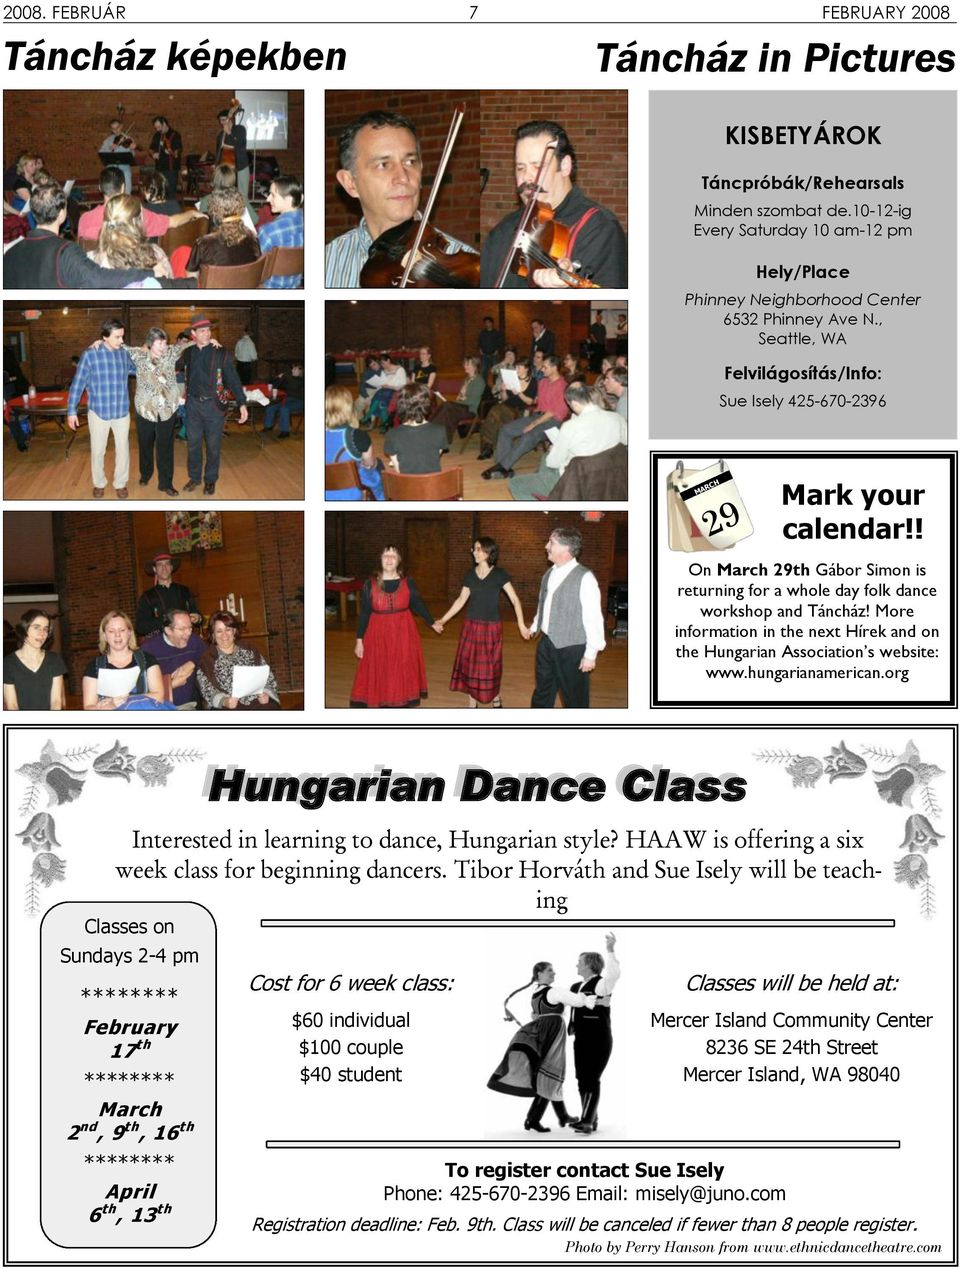 ! On March 29th Gábor Simon is returning for a whole day folk dance workshop and Táncház! More information in the next Hírek and on the Hungarian Association s website: www.hungarianamerican.